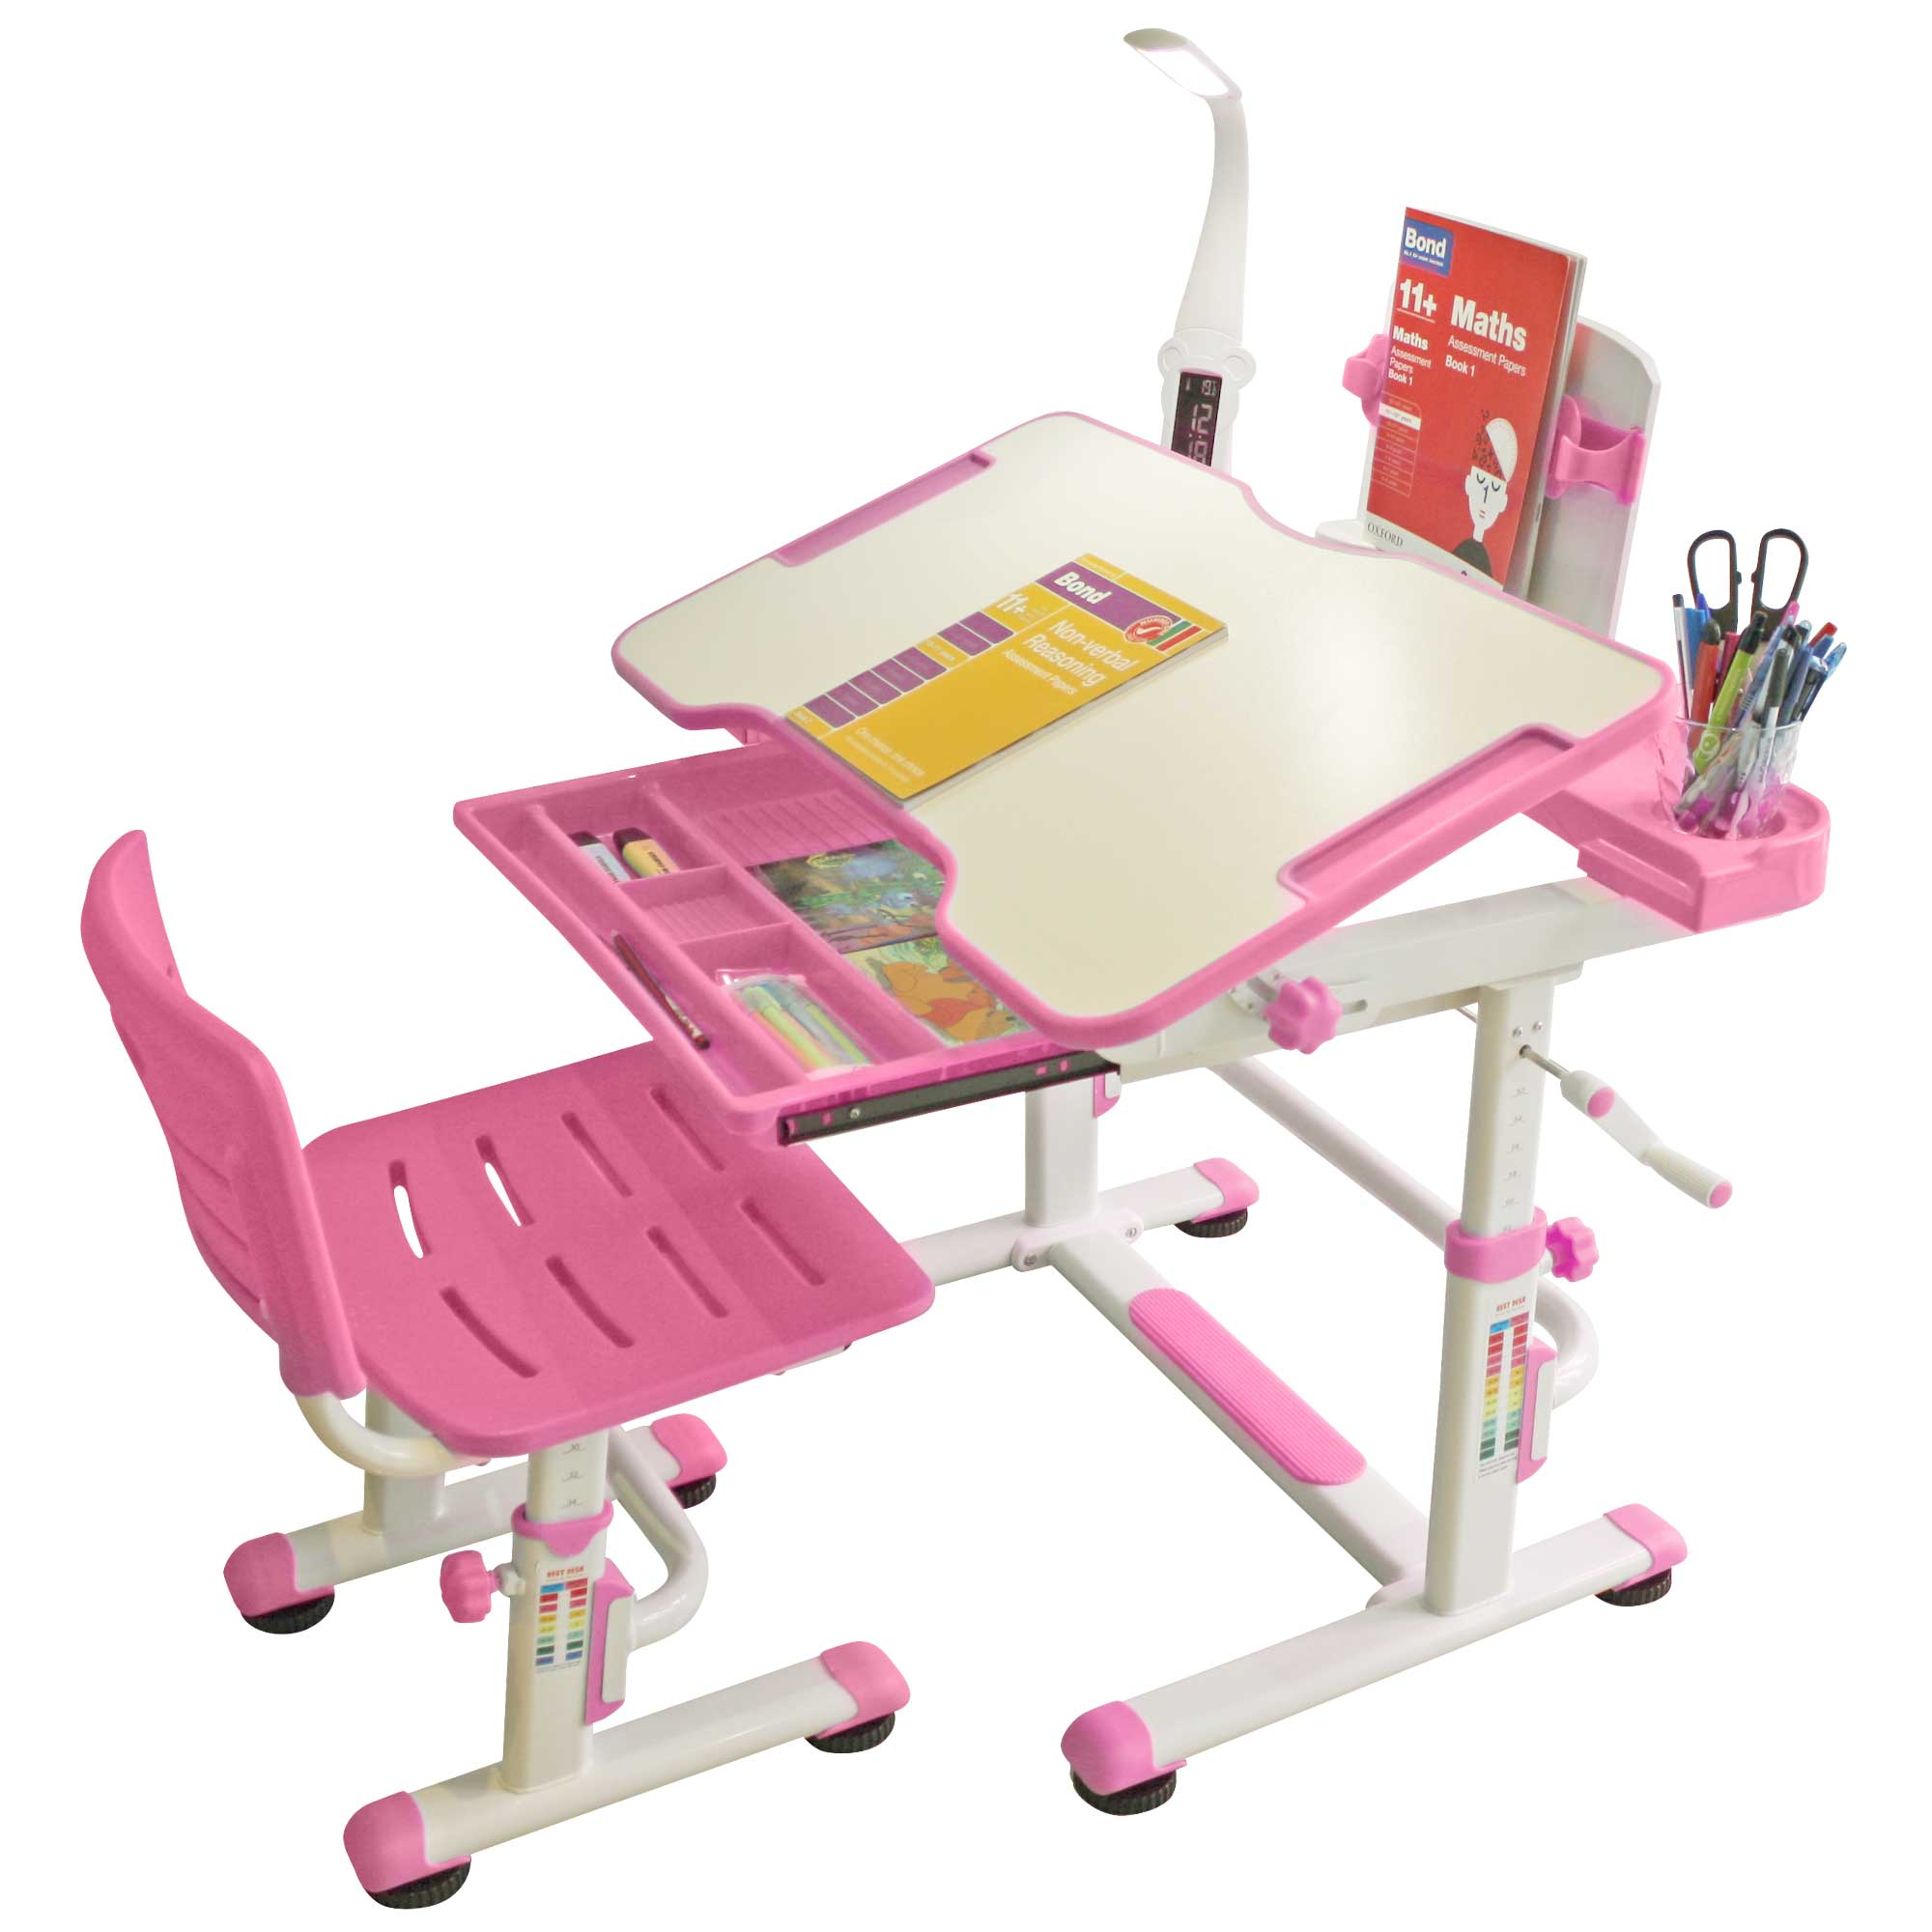 ergonomic-kids-desk-chair-study-desk-sprite-pink-table-for-kids-2019-model-04